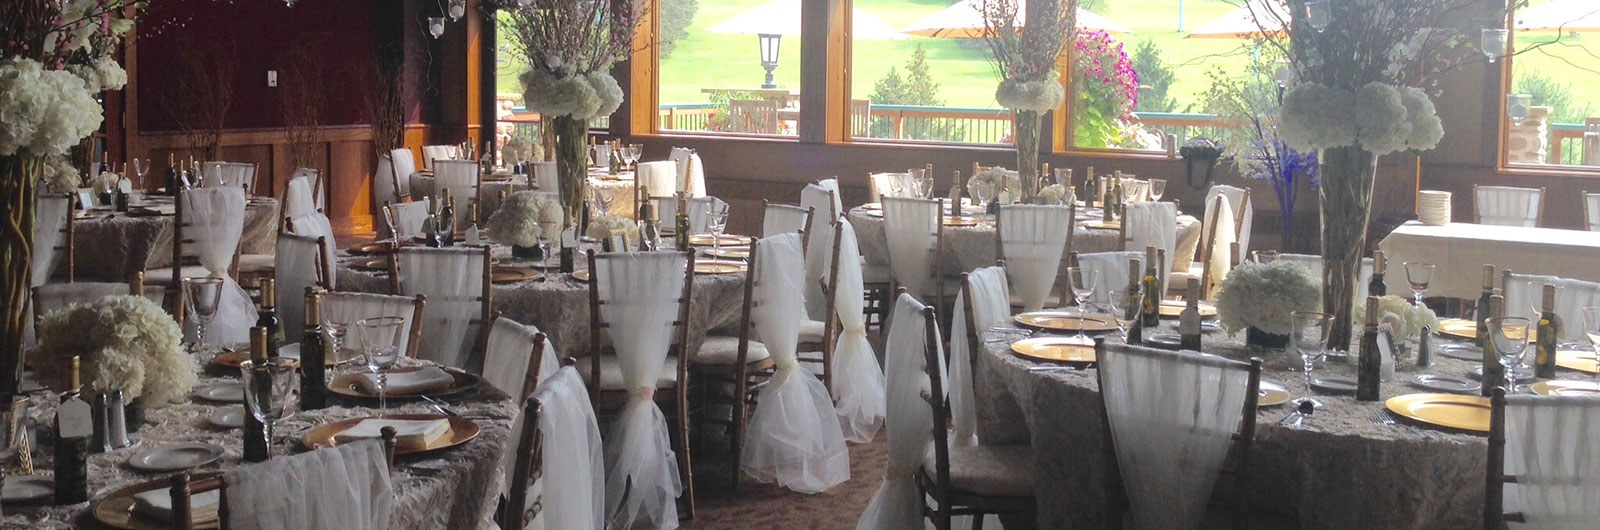 Wedding setup in Holiday Valley Lodge